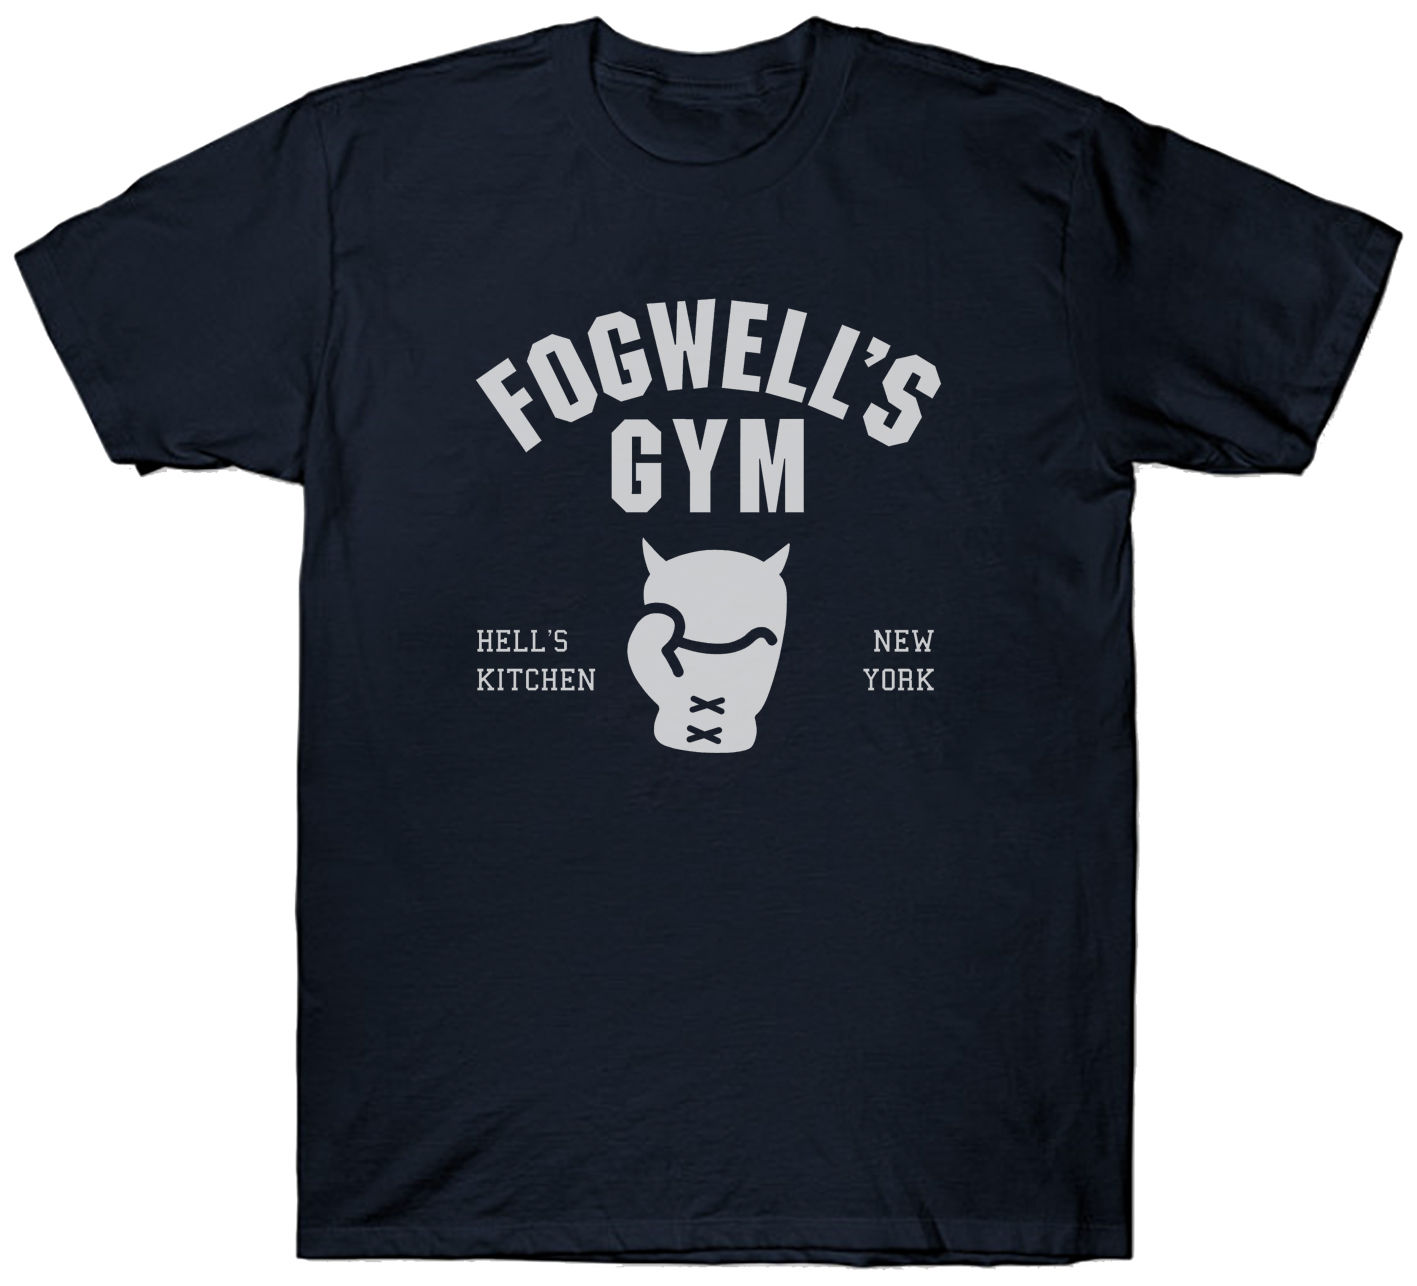 FOGWELL'S GYM T SHIRT TOP MARVEL SUPERHERO DAREDEVIL FILM MOVIE COMIC Printed Pure Cotton Men'S White Style image